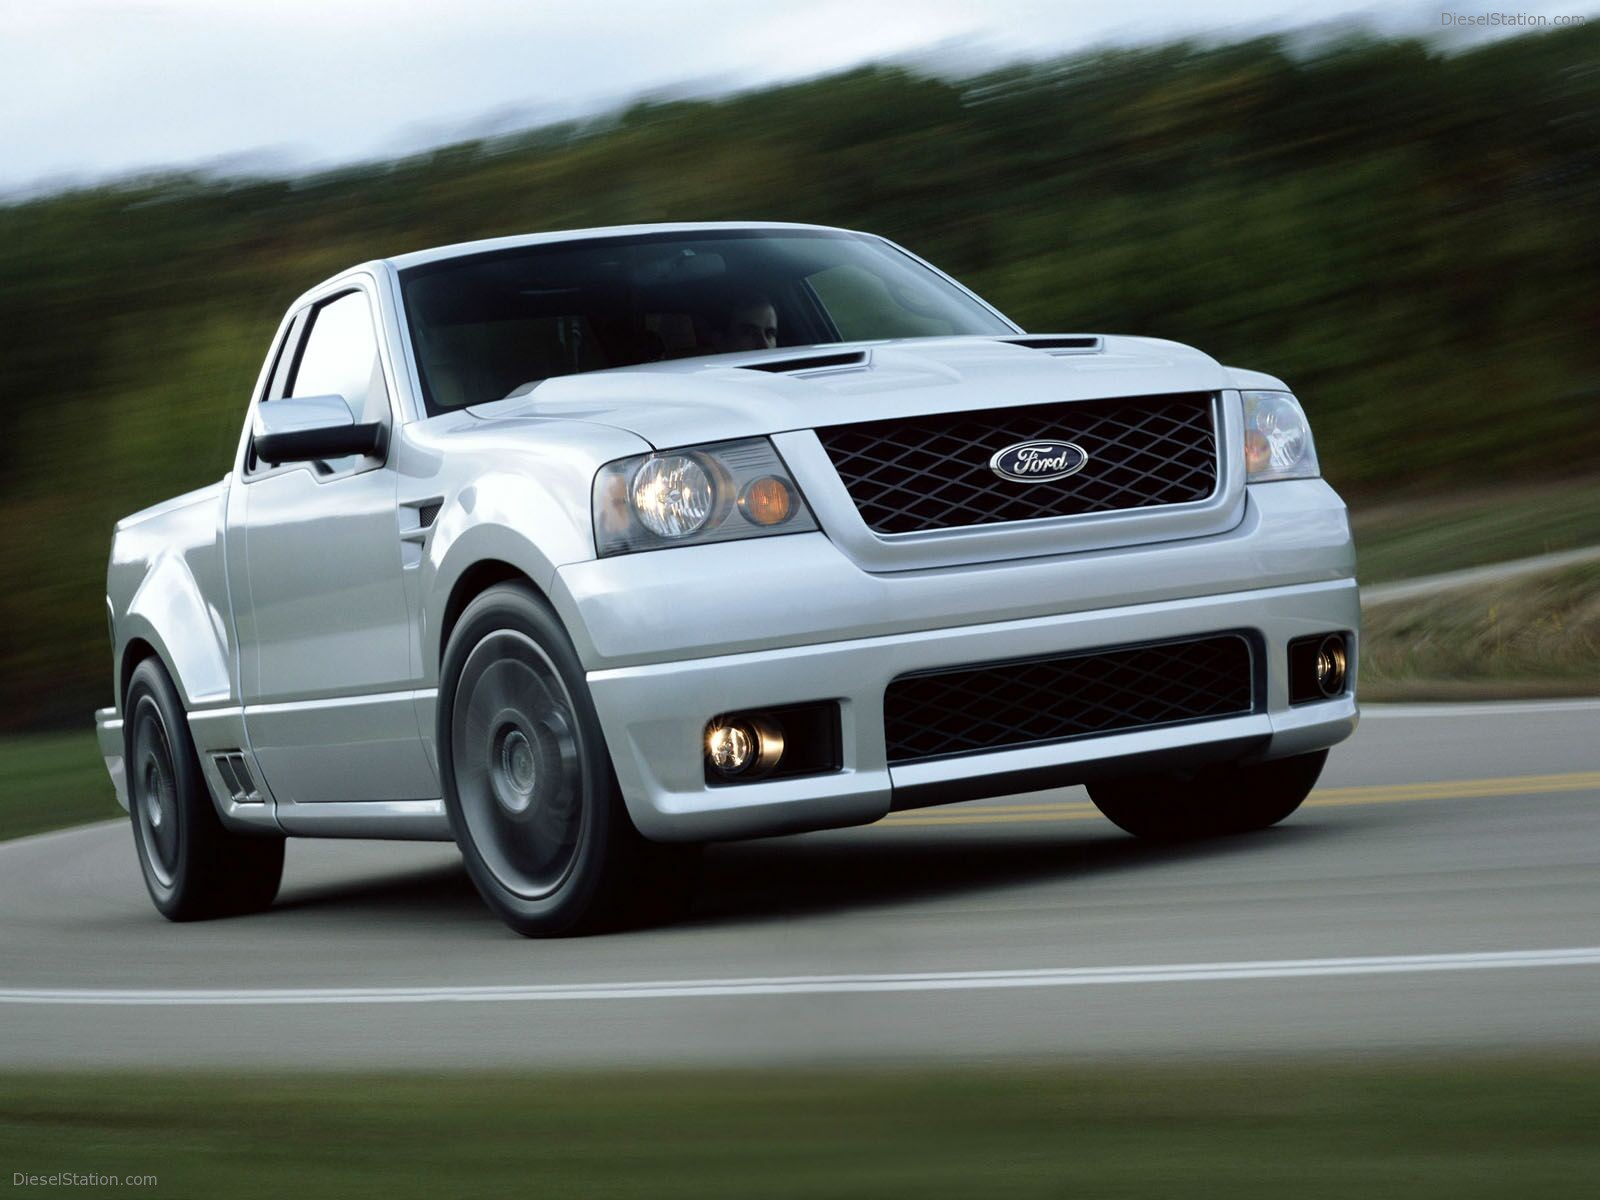 Ford F-150 2004 photo - 5